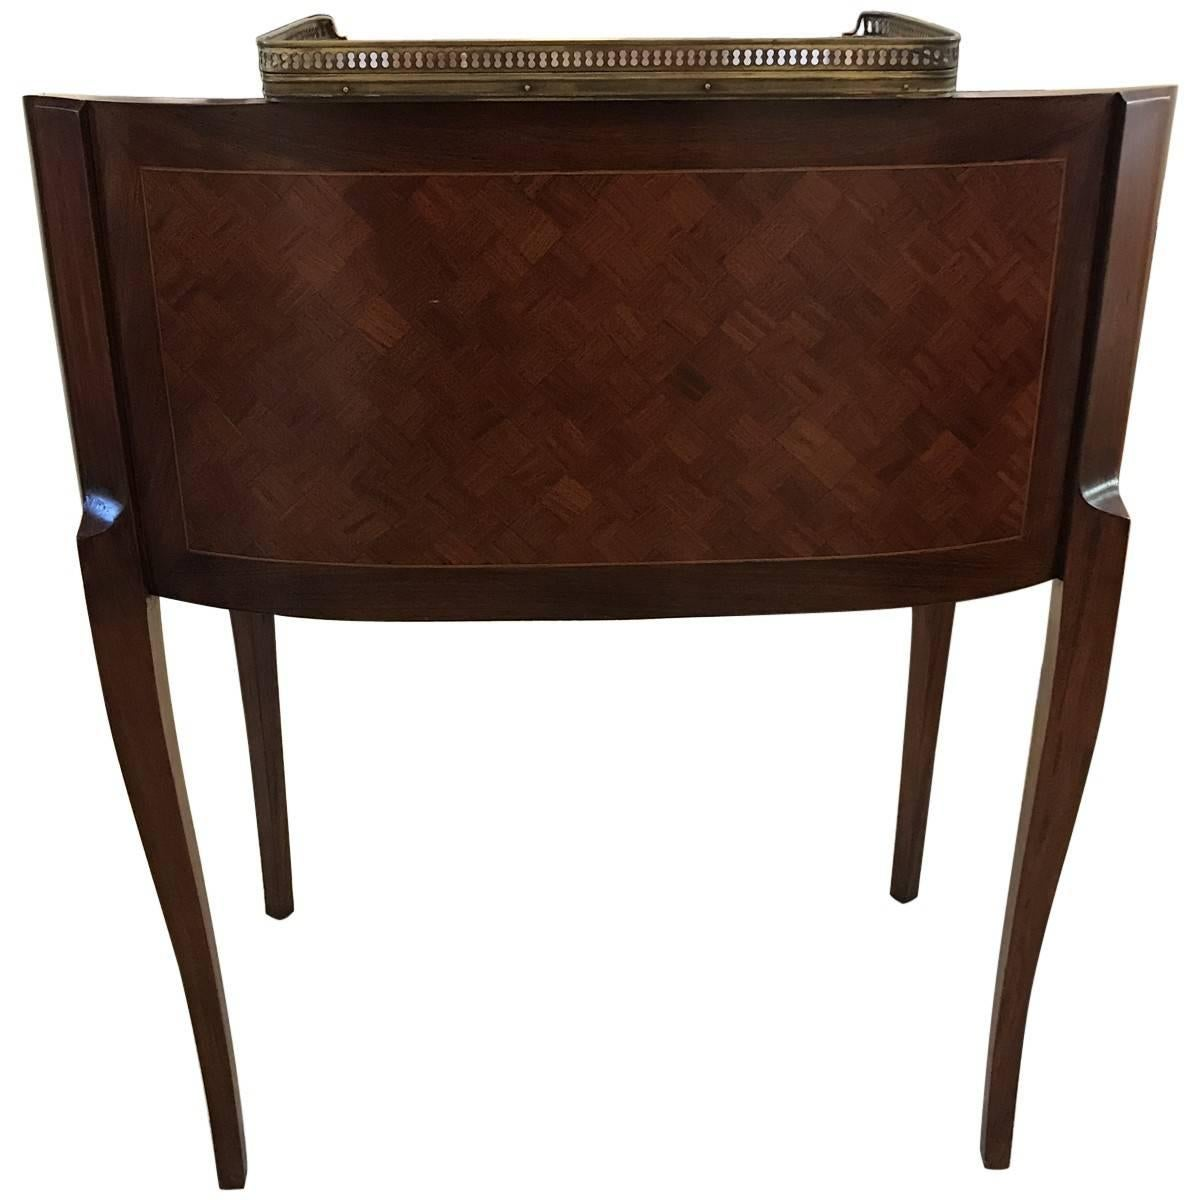 Antique Regency Style Gany And Leather Writing Desk For At 1stdibs